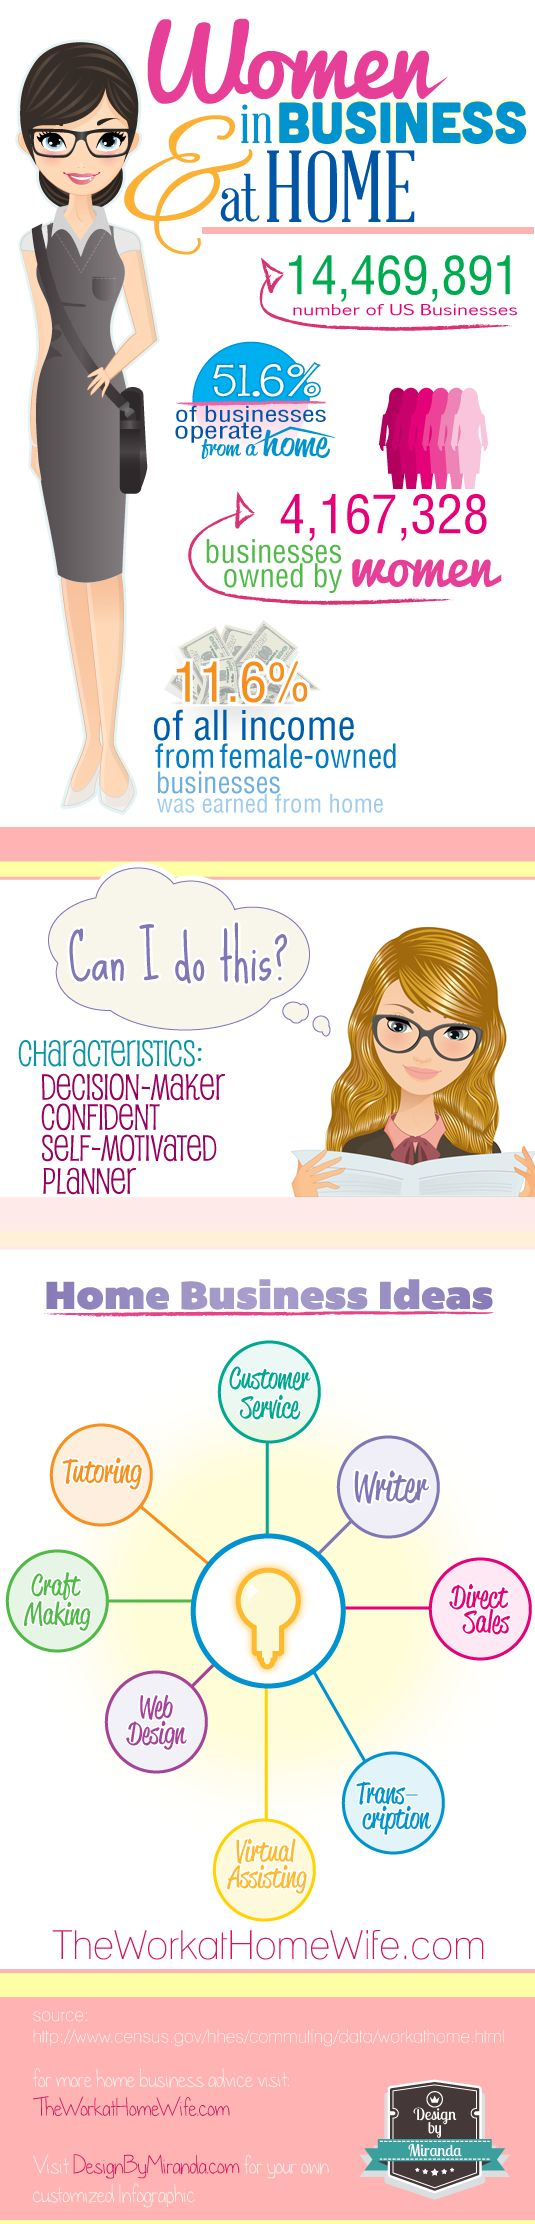 56 best Small Business Ideas images on Pinterest | Business ...